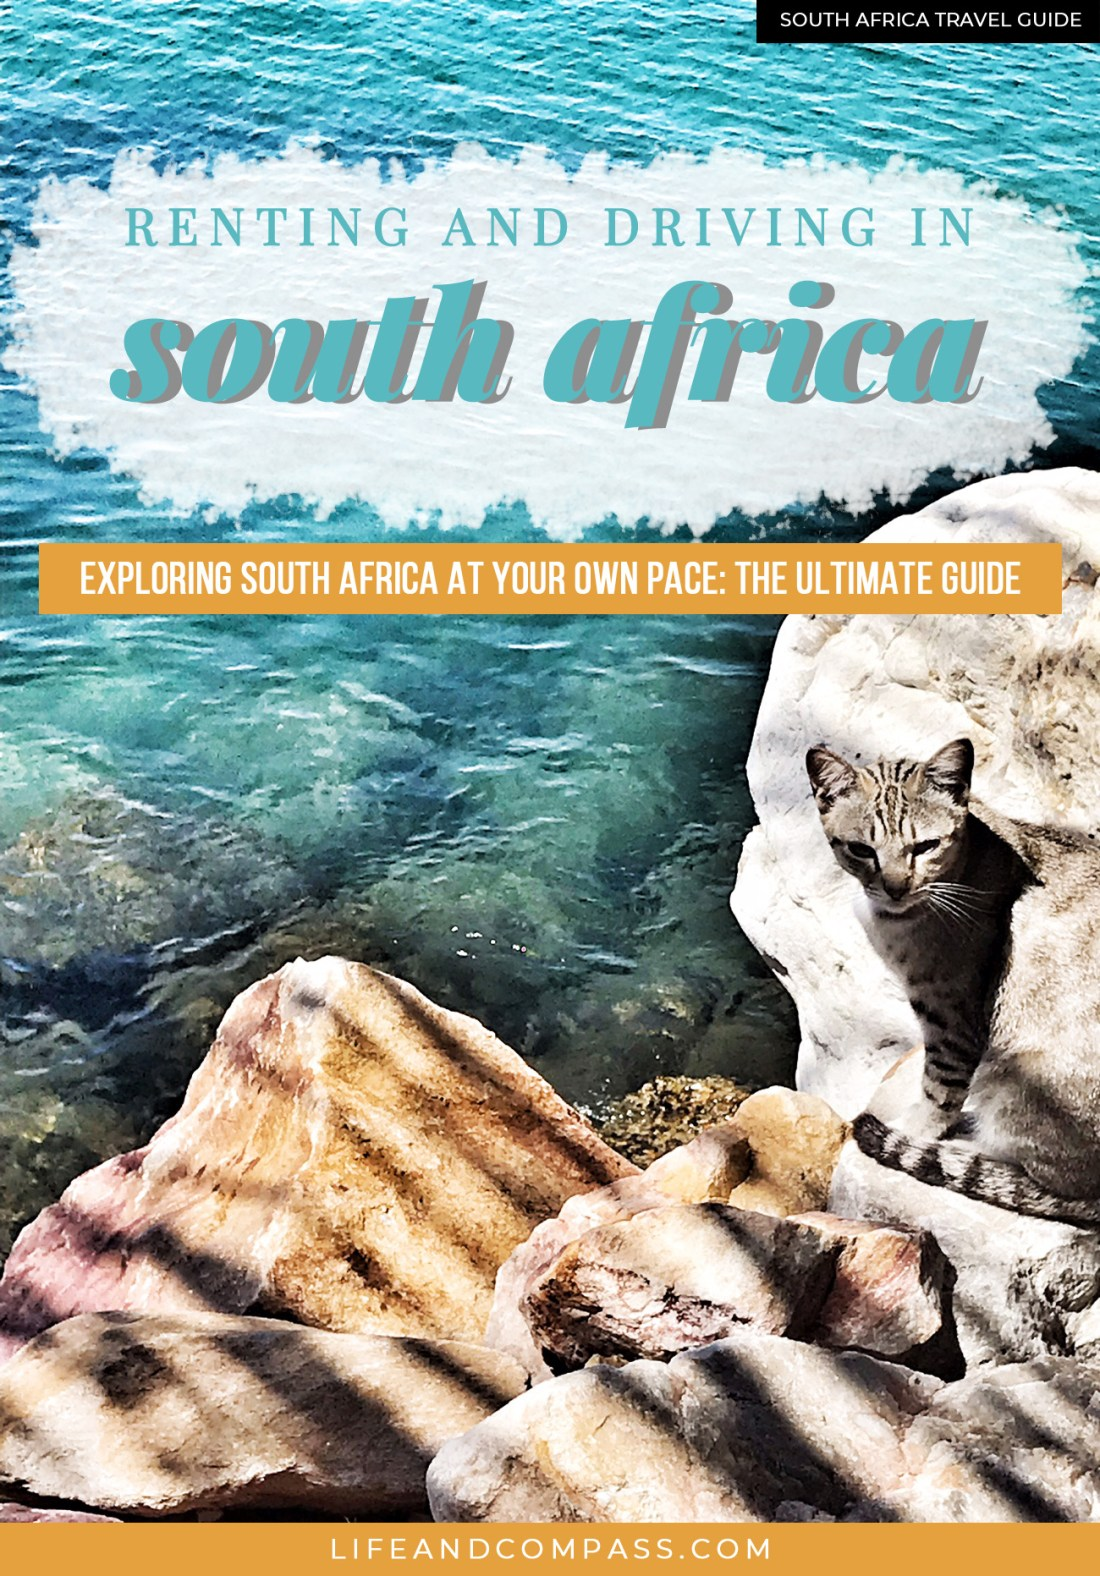 If you want to explore South Africa beyond the Cape Town or Joburg, here's the ultimate guide to renting a car in South Africa for visitors!